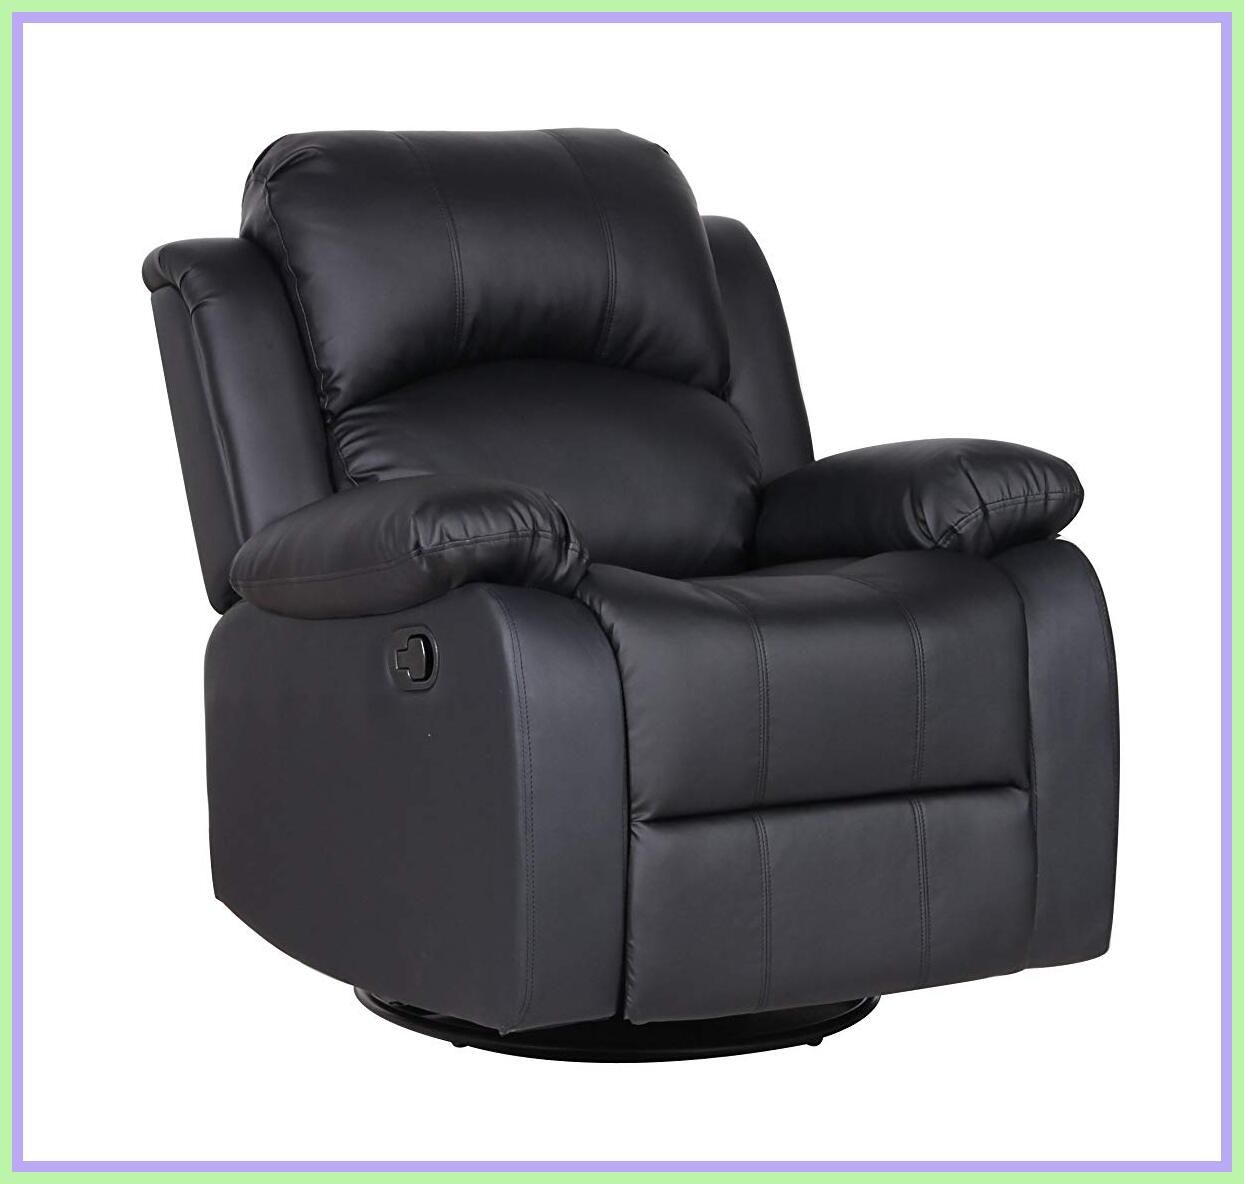 68 Reference Of Chair Swivel Living Room In 2020 Living Room Recliner Rocker Recliner Chair Swivel Recliner Chairs #swivel #recliners #chairs #living #room